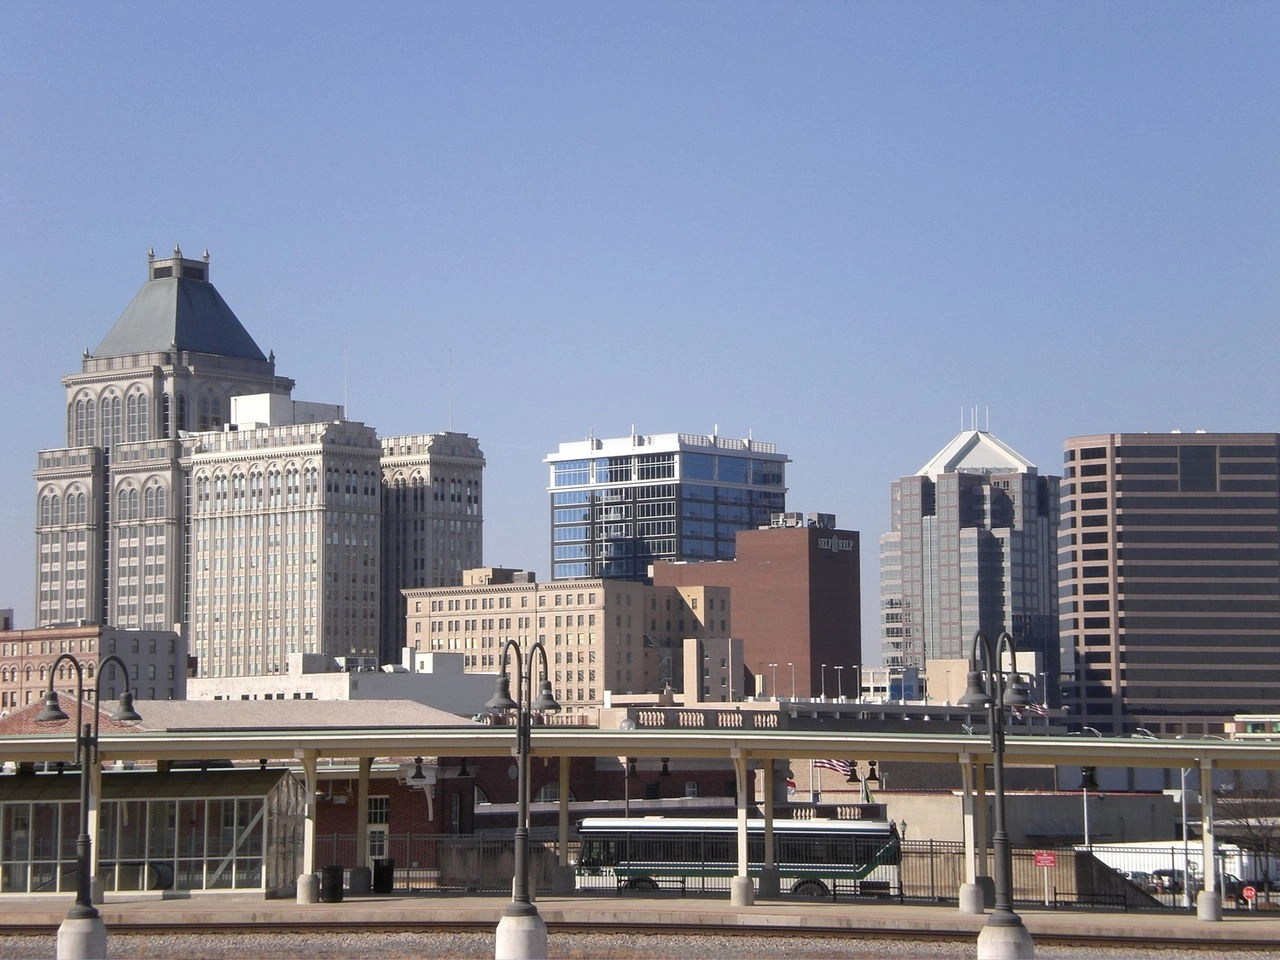 The skyline of Greensboro, North Carolina with modern day buildings and architecture.